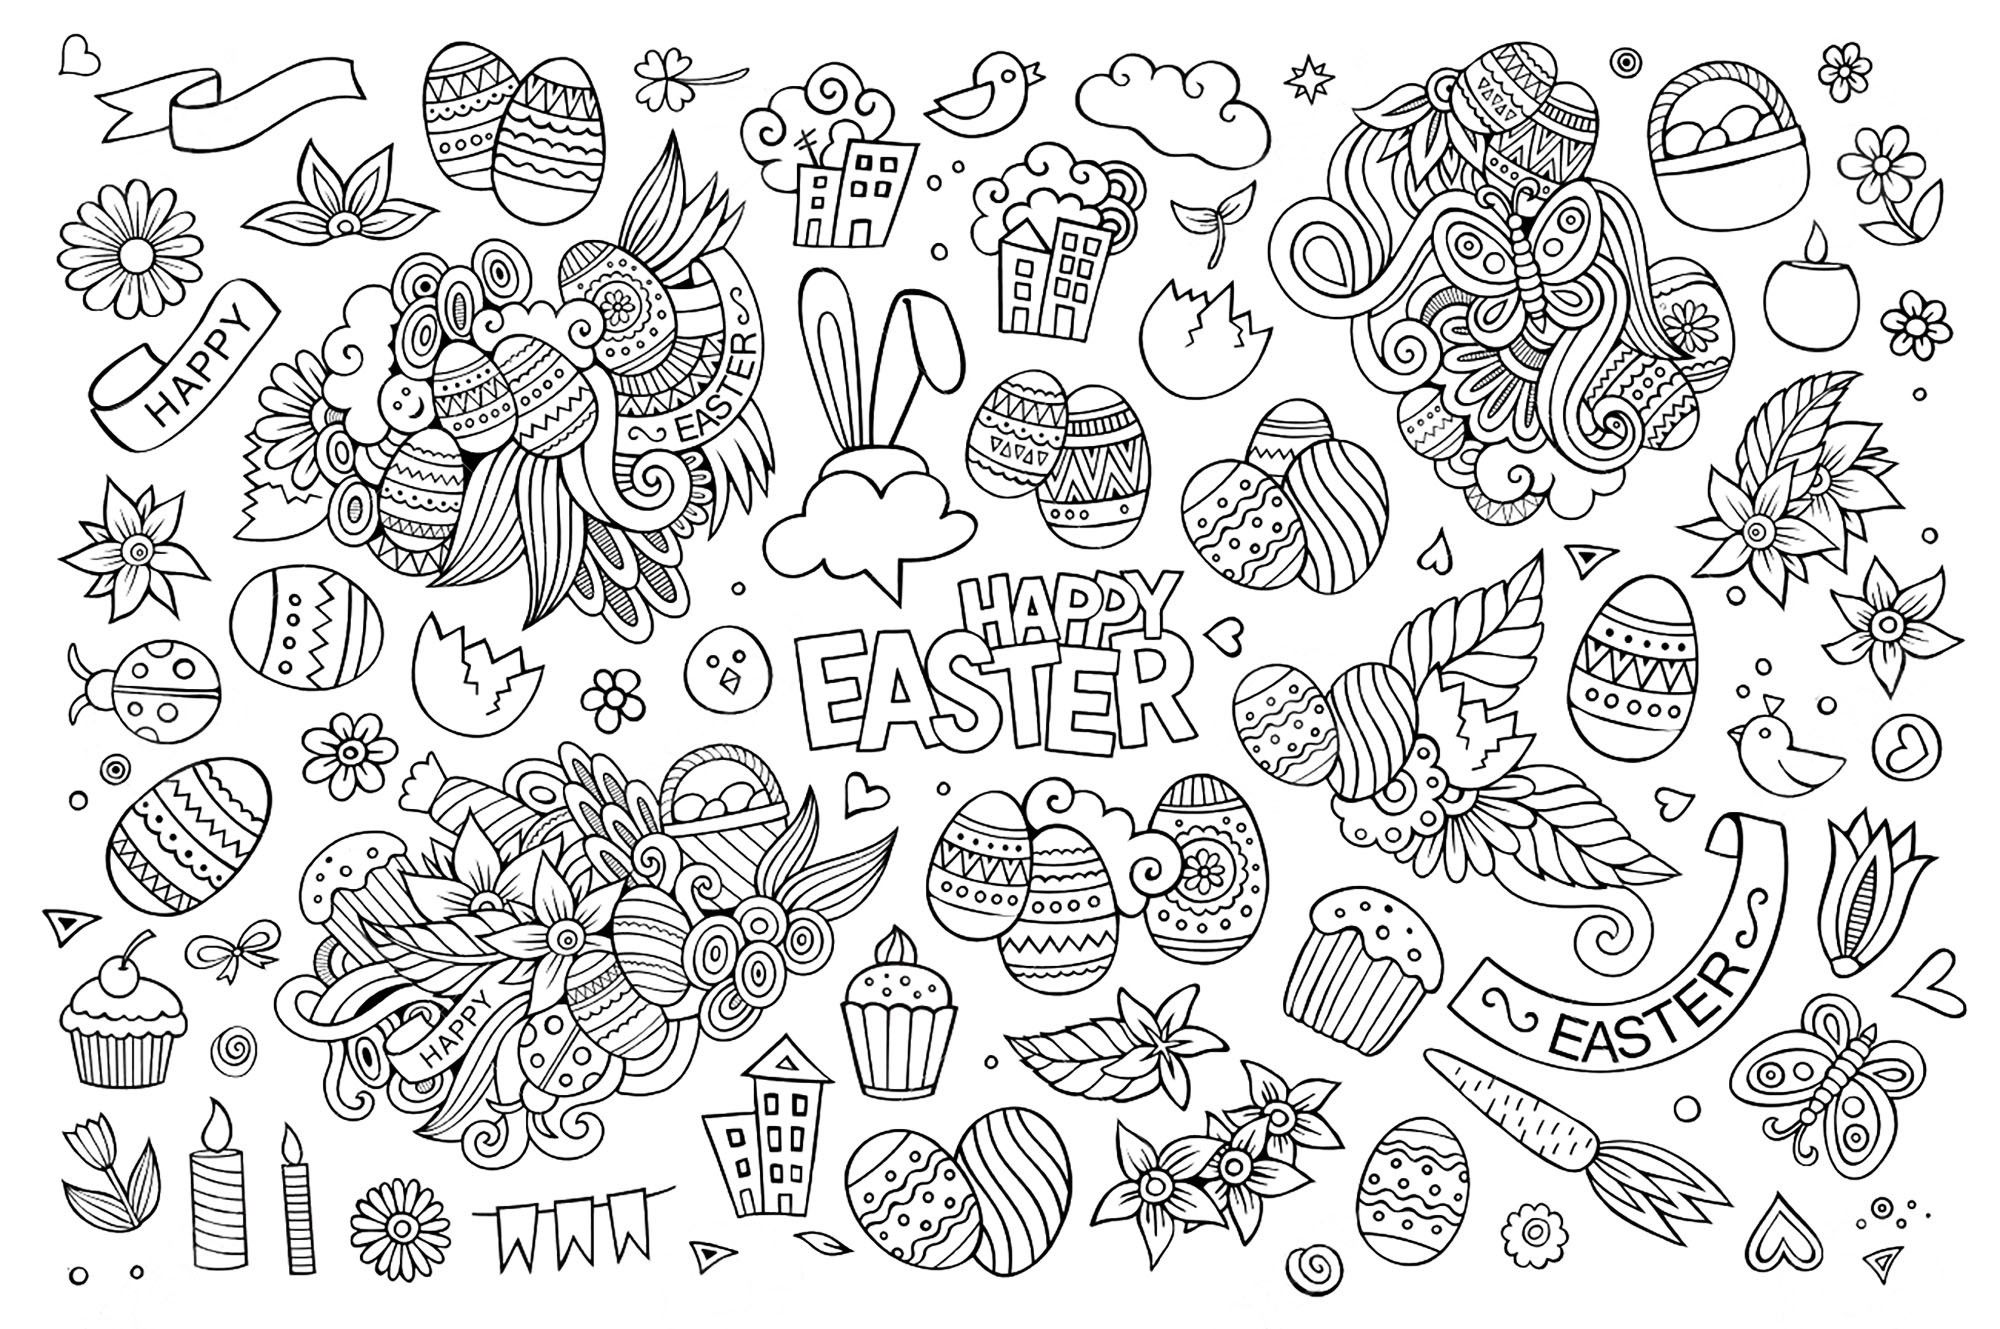 Doodle coloring pages awesome photos best coloring pages enormous doodle coloring pages as if luxury